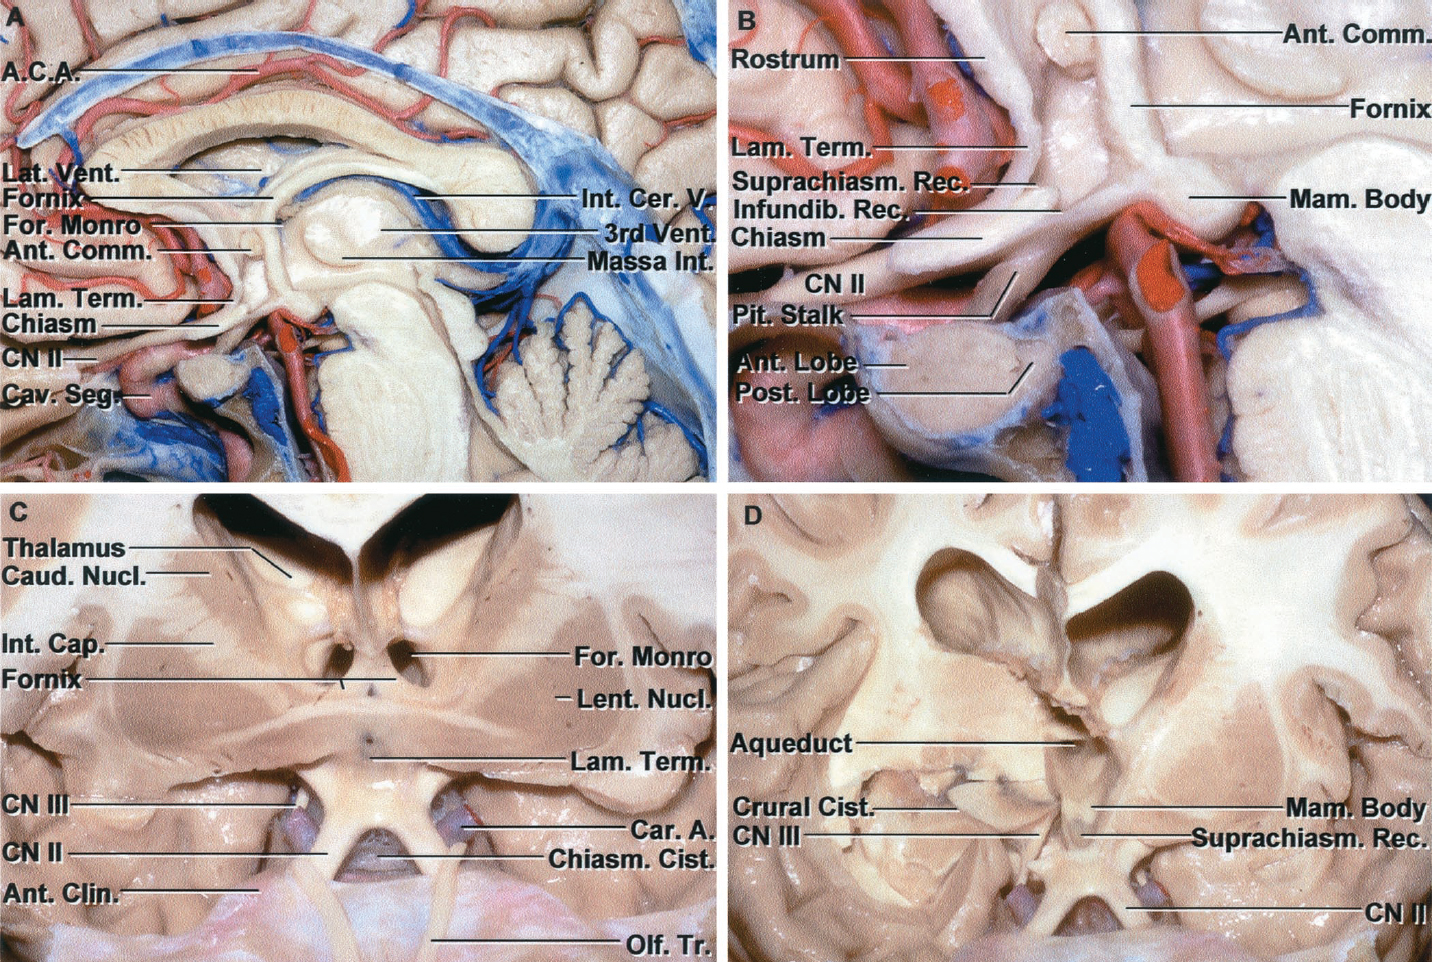 Figure 8.13 (A–D). Neural relationships in the suprasellar area. A, midsagittal section of the sella, pituitary gland, sphenoid sinus and third ventricle. The anterior part of the third ventricle is located above the sella. The columns of the fornix descend along the superior and anterior margins of the foramen of Monro to reach the mamillary bodies. The optic chiasm and stalk are located above the sella. The internal cerebral veins course in the roof of the third ventricle. B, enlarged view. The suprachiasmatic recess of the third ventricle is located between the lamina terminalis and the chiasm. The infundibular recess extends into the stalk in the area behind the chiasm. The lamina terminalis extends upward and is continuous with the rostrum of the corpus callosum. The thin part of the third ventricular floor between the chiasm and the mamillary bodies is suitable for a third ventriculostomy. The anterior commissure crosses the wall of the third ventricle in front of the columns of the fornix. The massa intermedium crosses the midportion of the third ventricle. C, the anterior part of the hemisphere has been removed to expose the lateral ventricles and suprasellar area. The optic nerve and chiasm are located above the sella. The chiasmatic cistern is located below the optic chiasm and opens upward between the optic nerves to the area in front of the lamina terminalis. The anterior commissure crosses the anterior wall of the third ventricle above the lamina terminalis. The anterior part of the third ventricle is located above the sella. The body of the lateral ventricle is situated above the third ventricle. The columns of the fornix form the superior and anterior margins of the foramen of Monro. The olfactory tracts pass above the optic nerves and the optic tracts pass above the oculomotor nerves. D, the cross section on the right hemisphere has been extended backward to the midportion of the temporal horn and thalamus. This exposes the oculomotor nerve arising o